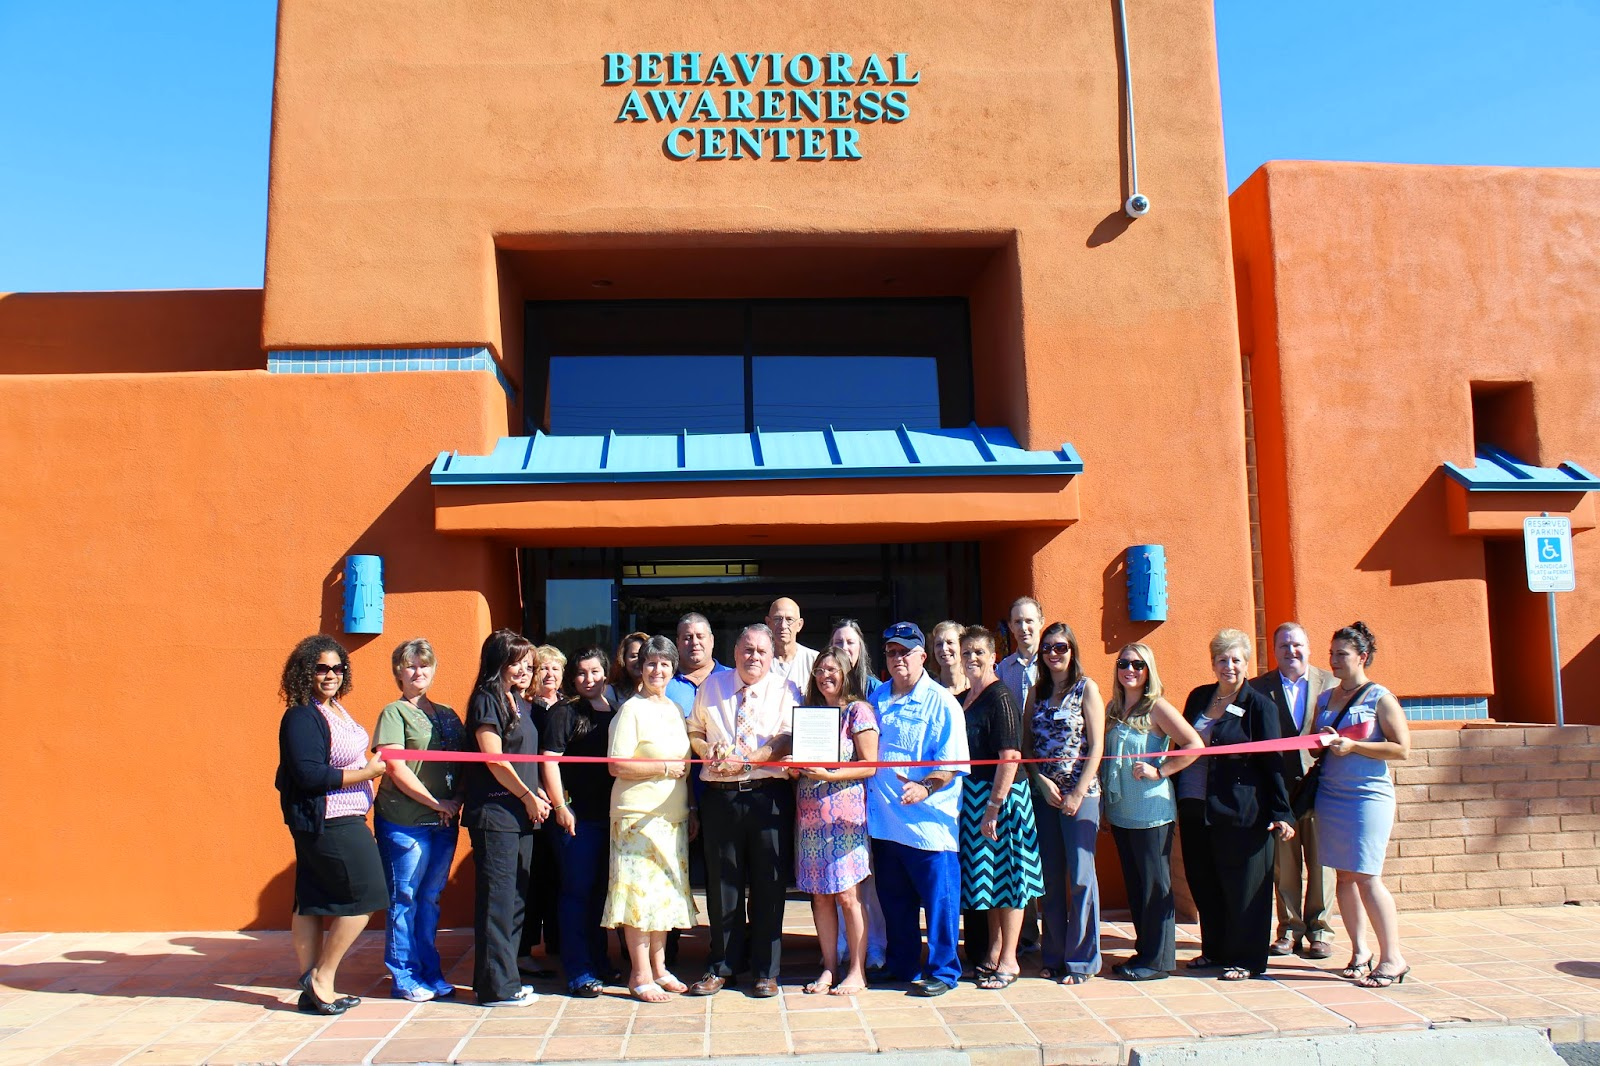 Grand opening of Behavioral Awareness Center's new building.  Ribbon Cutting ceremony occurred on September 23rd.  Pictured are Brackie Sekavec, Owner and CEO, with Chamber members.